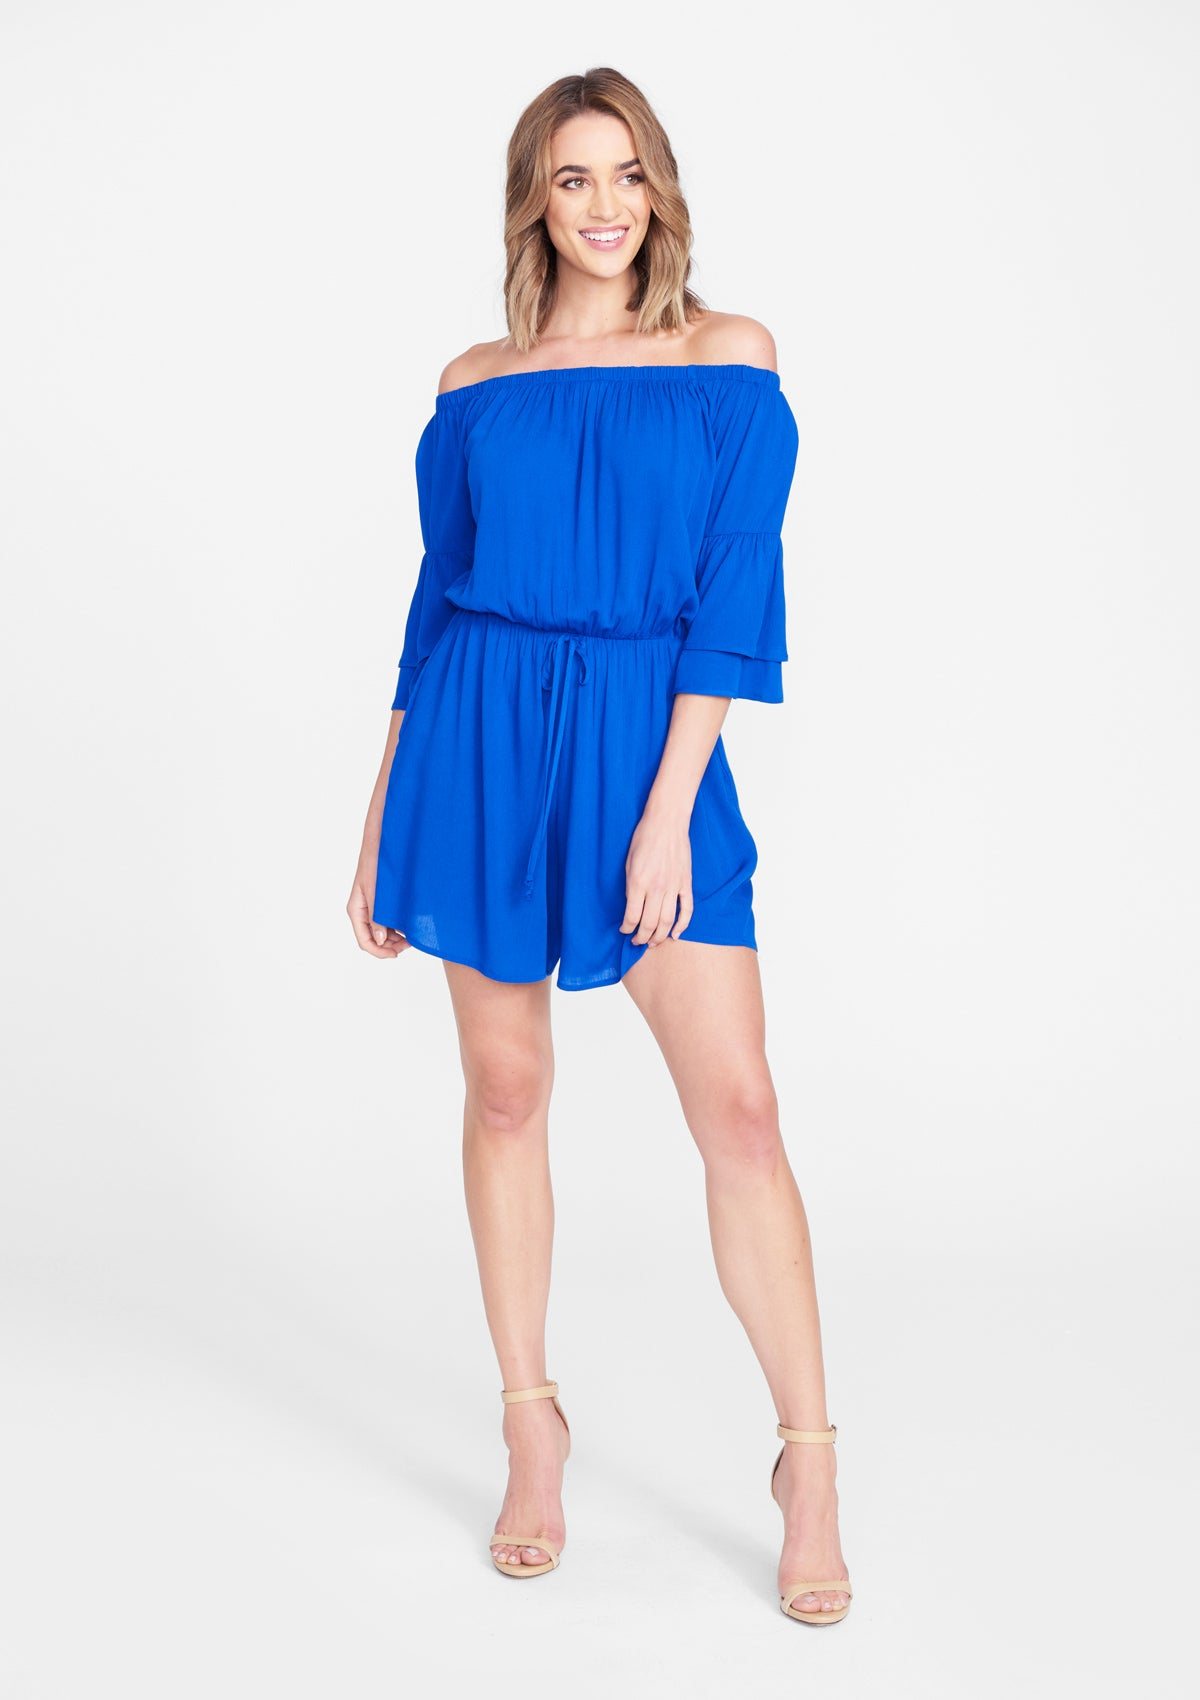 Alloy Apparel Tall Drop Shoulder Romper for Women in Royal Size L   Polyester